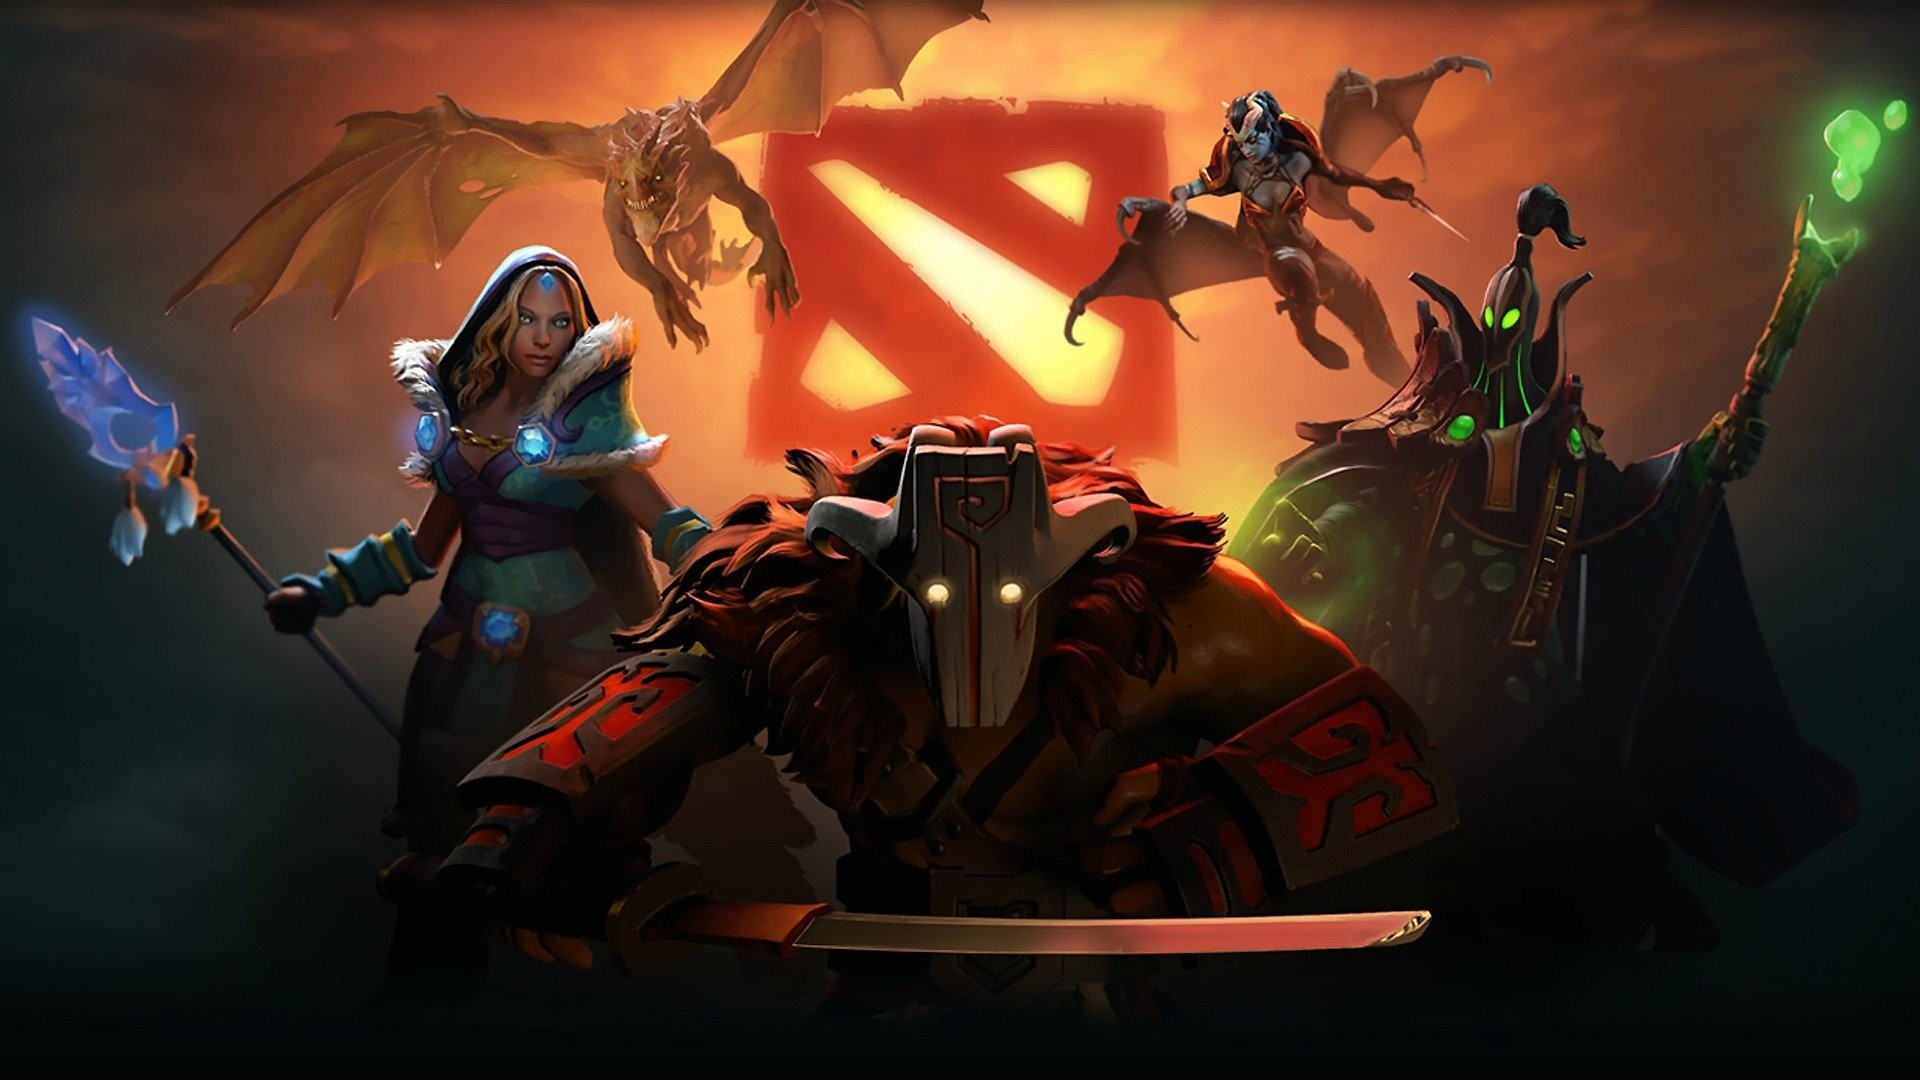 84 dota 2 wallpapers download free amazing high resolution